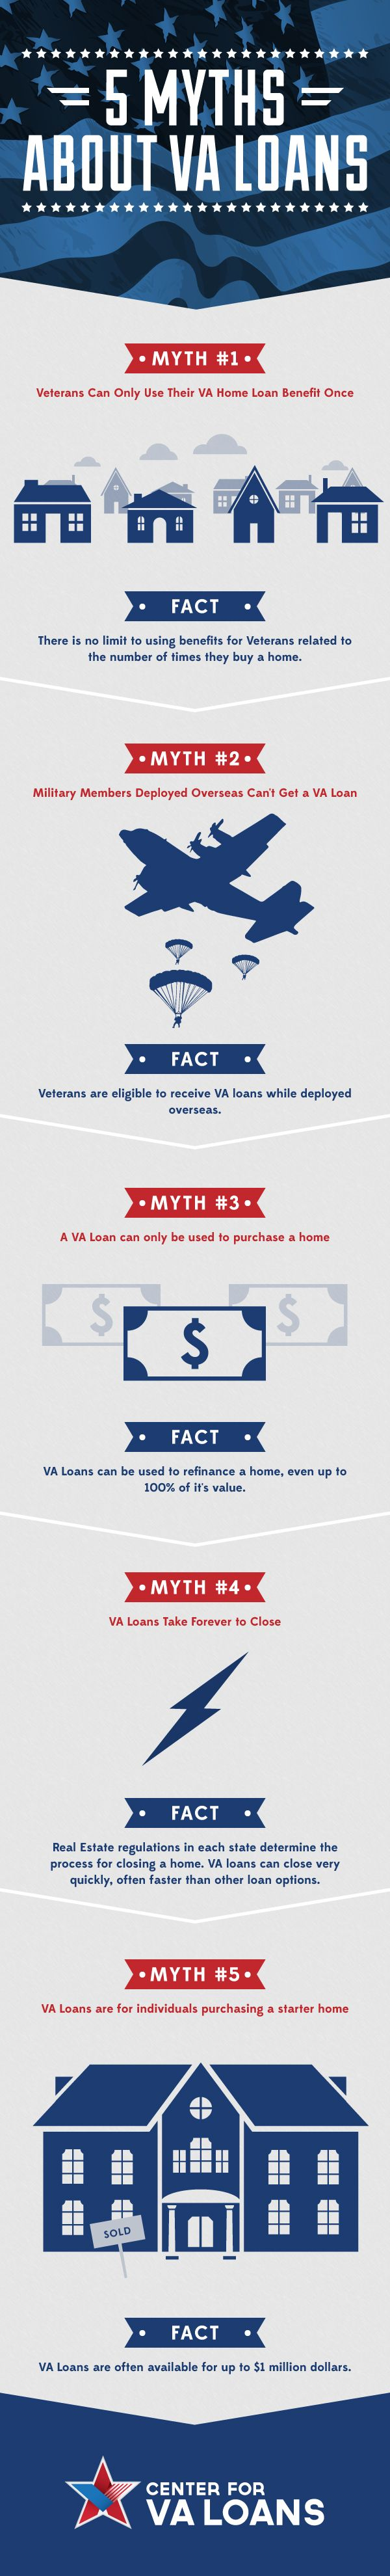 5 Facts About VA Loans Infographic